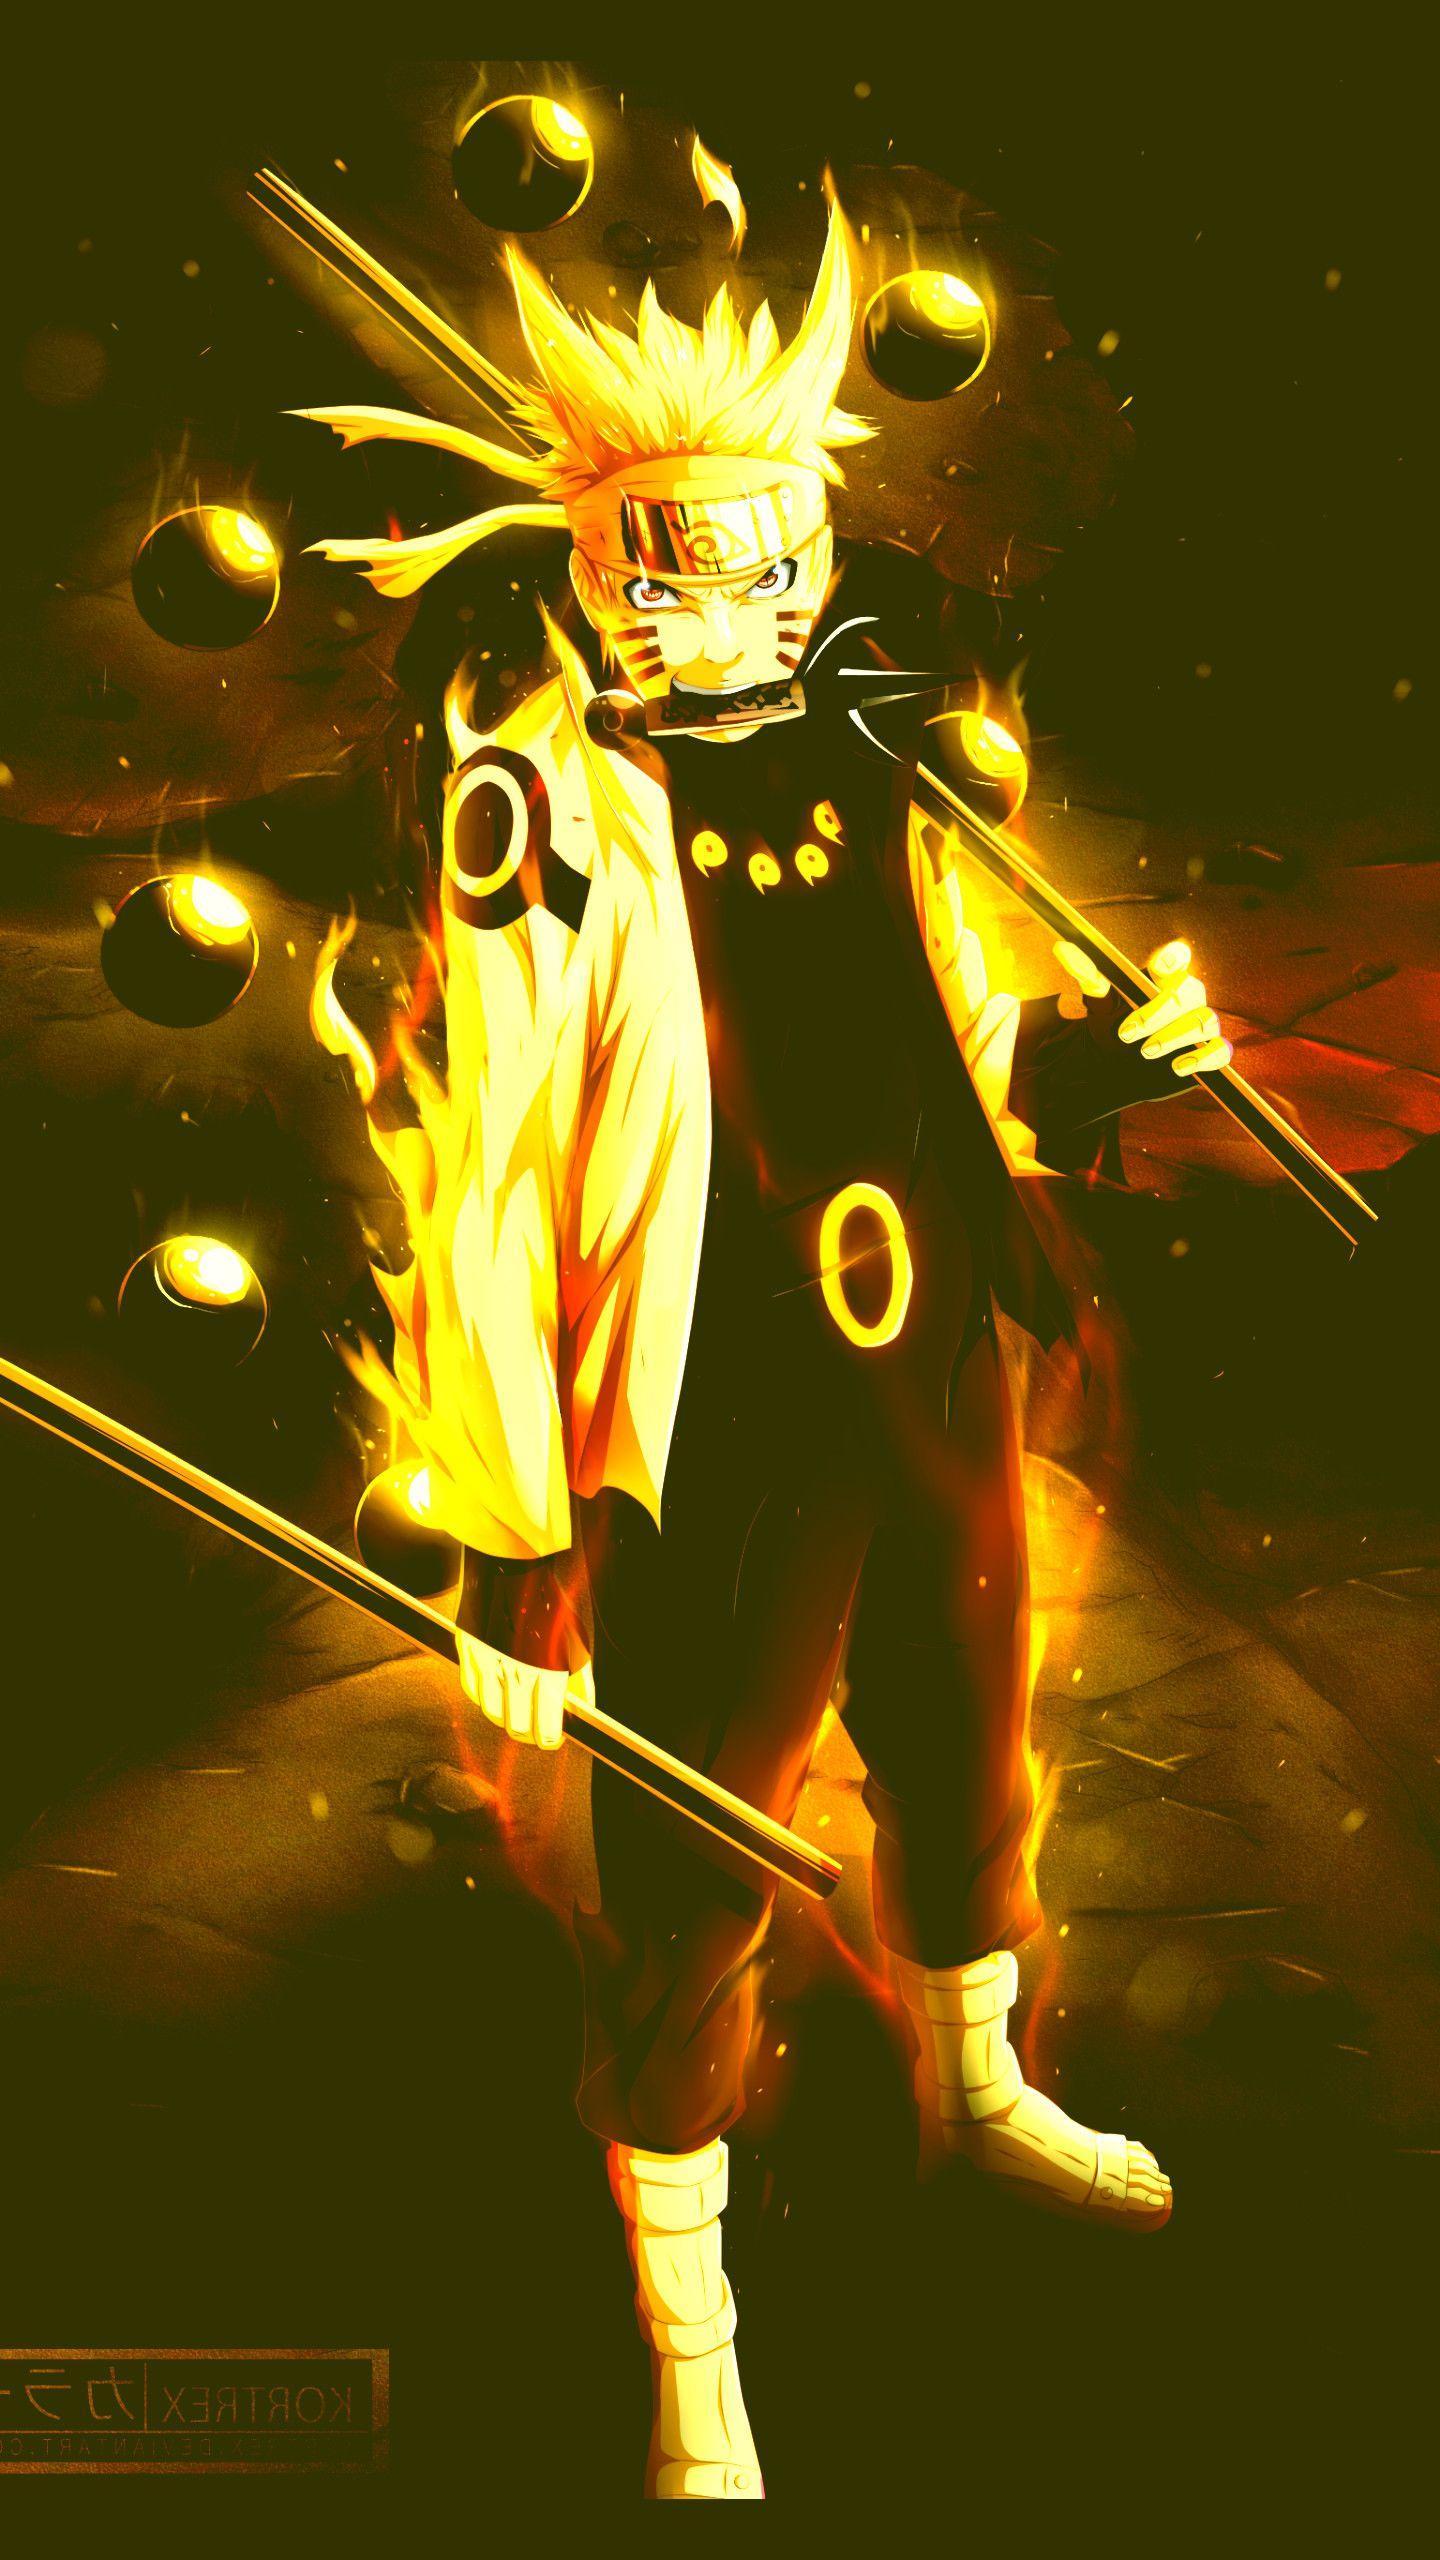 Naruto Live Wallpaper Iphone , Free Stock Wallpapers on